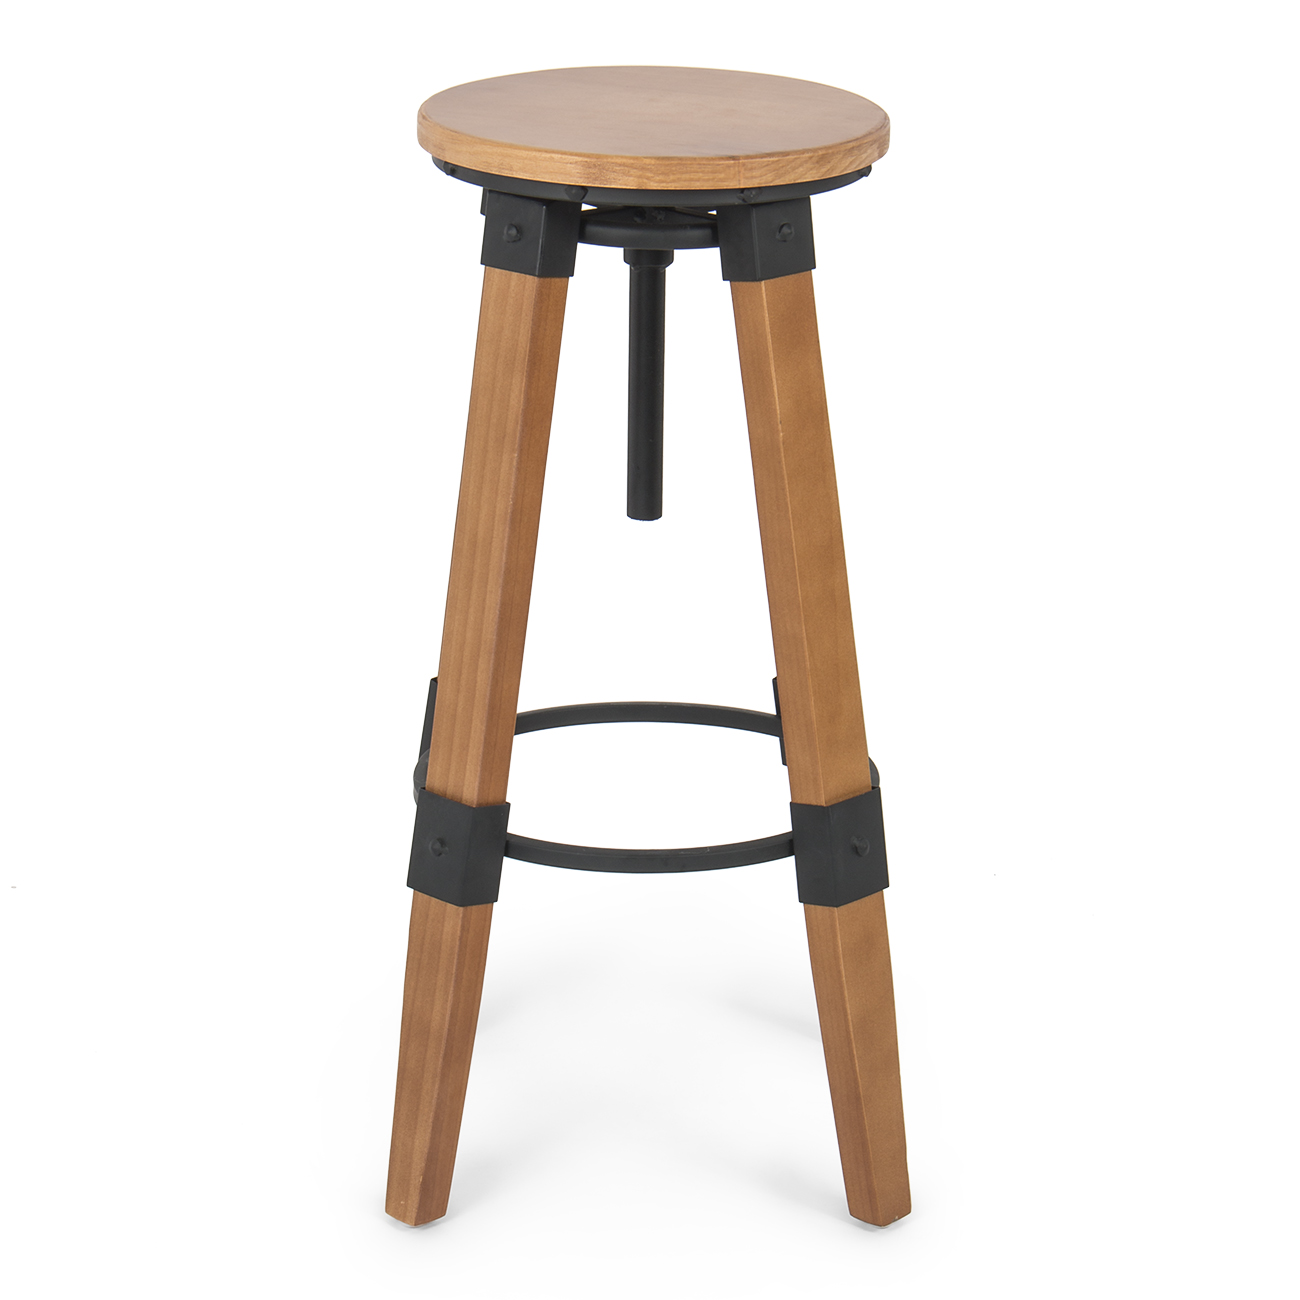 industrial bar stools swivel wood vintage adjustable counter seat height new ebay. Black Bedroom Furniture Sets. Home Design Ideas